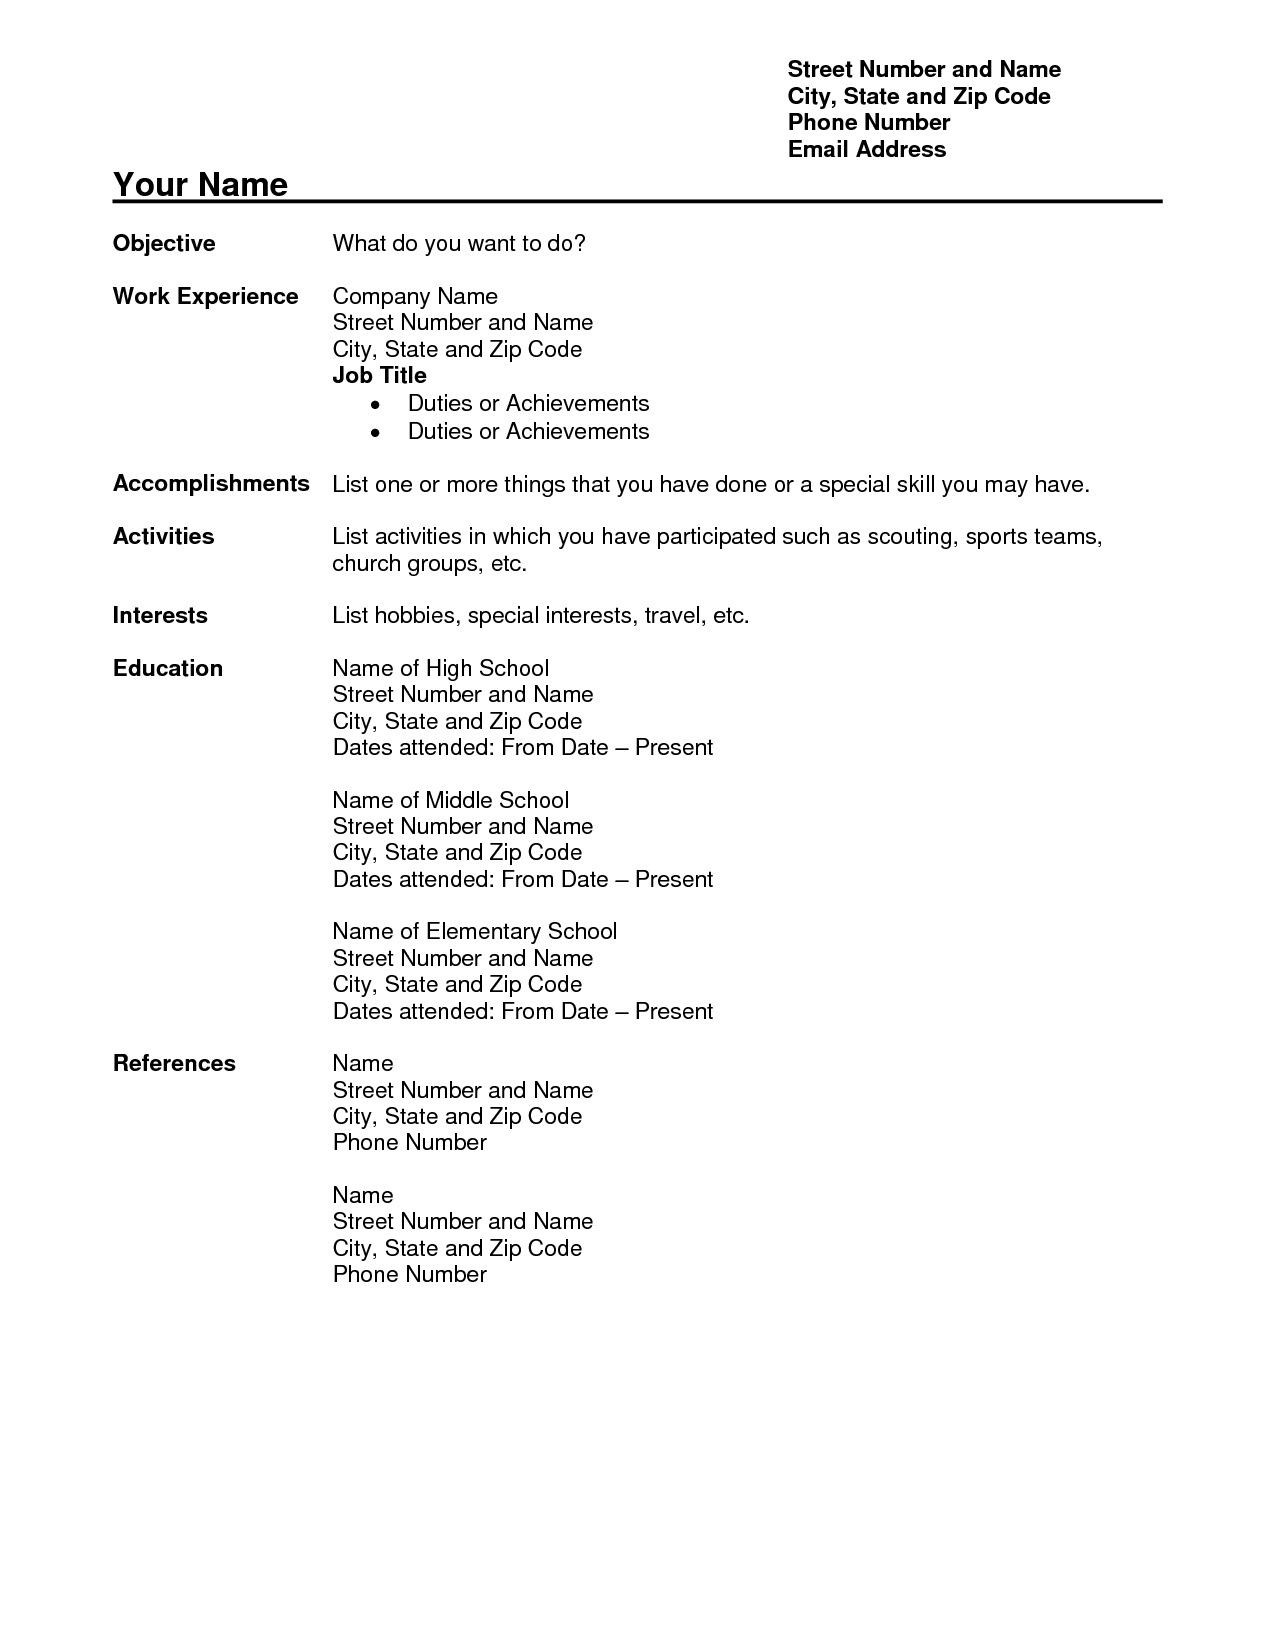 free teacher resume templates download free teacher resume templates download  free teacher